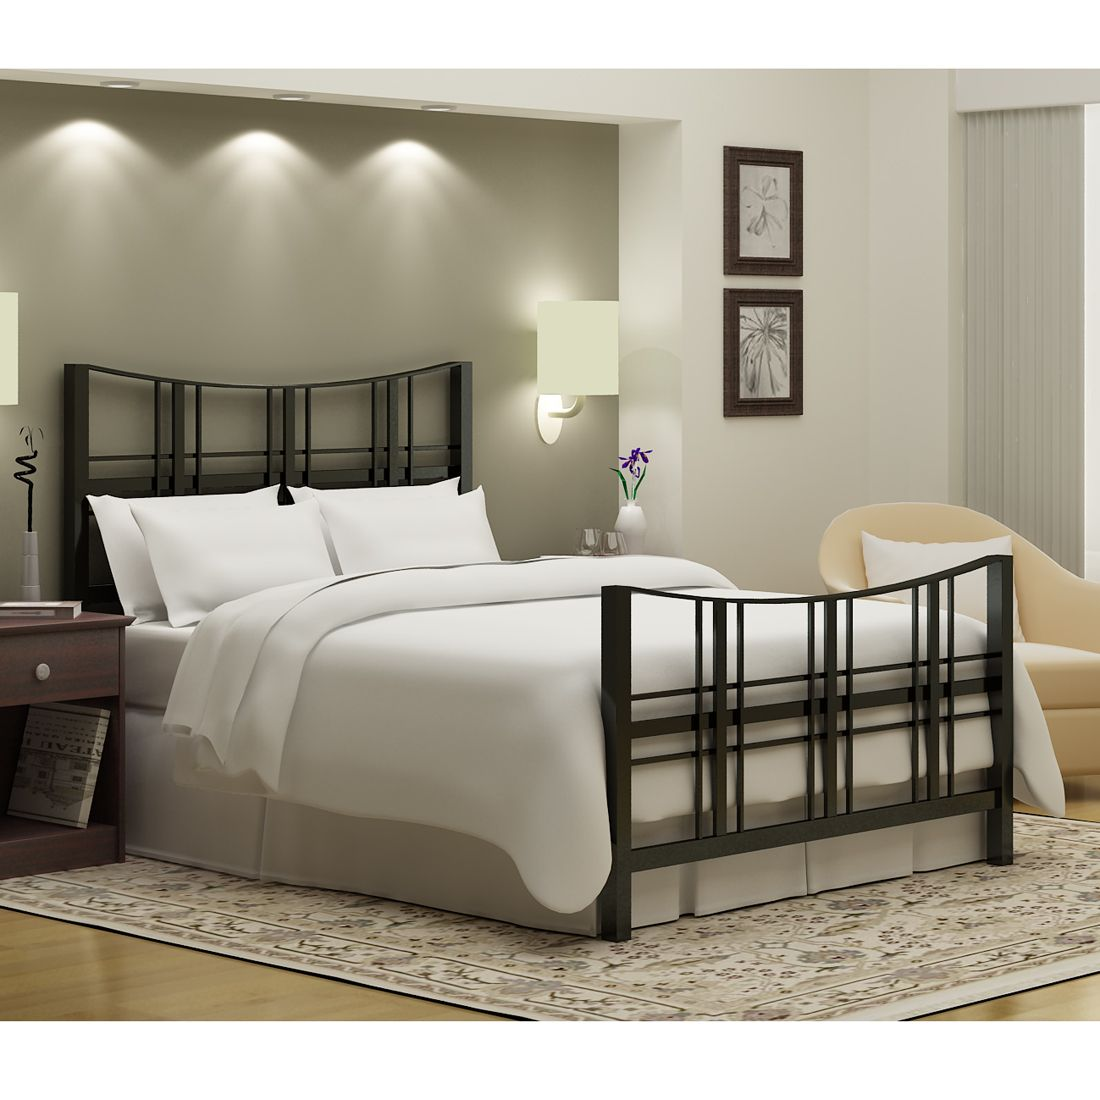 Add a stylish touch to your bedroom with this queen-size \'Stanford ...